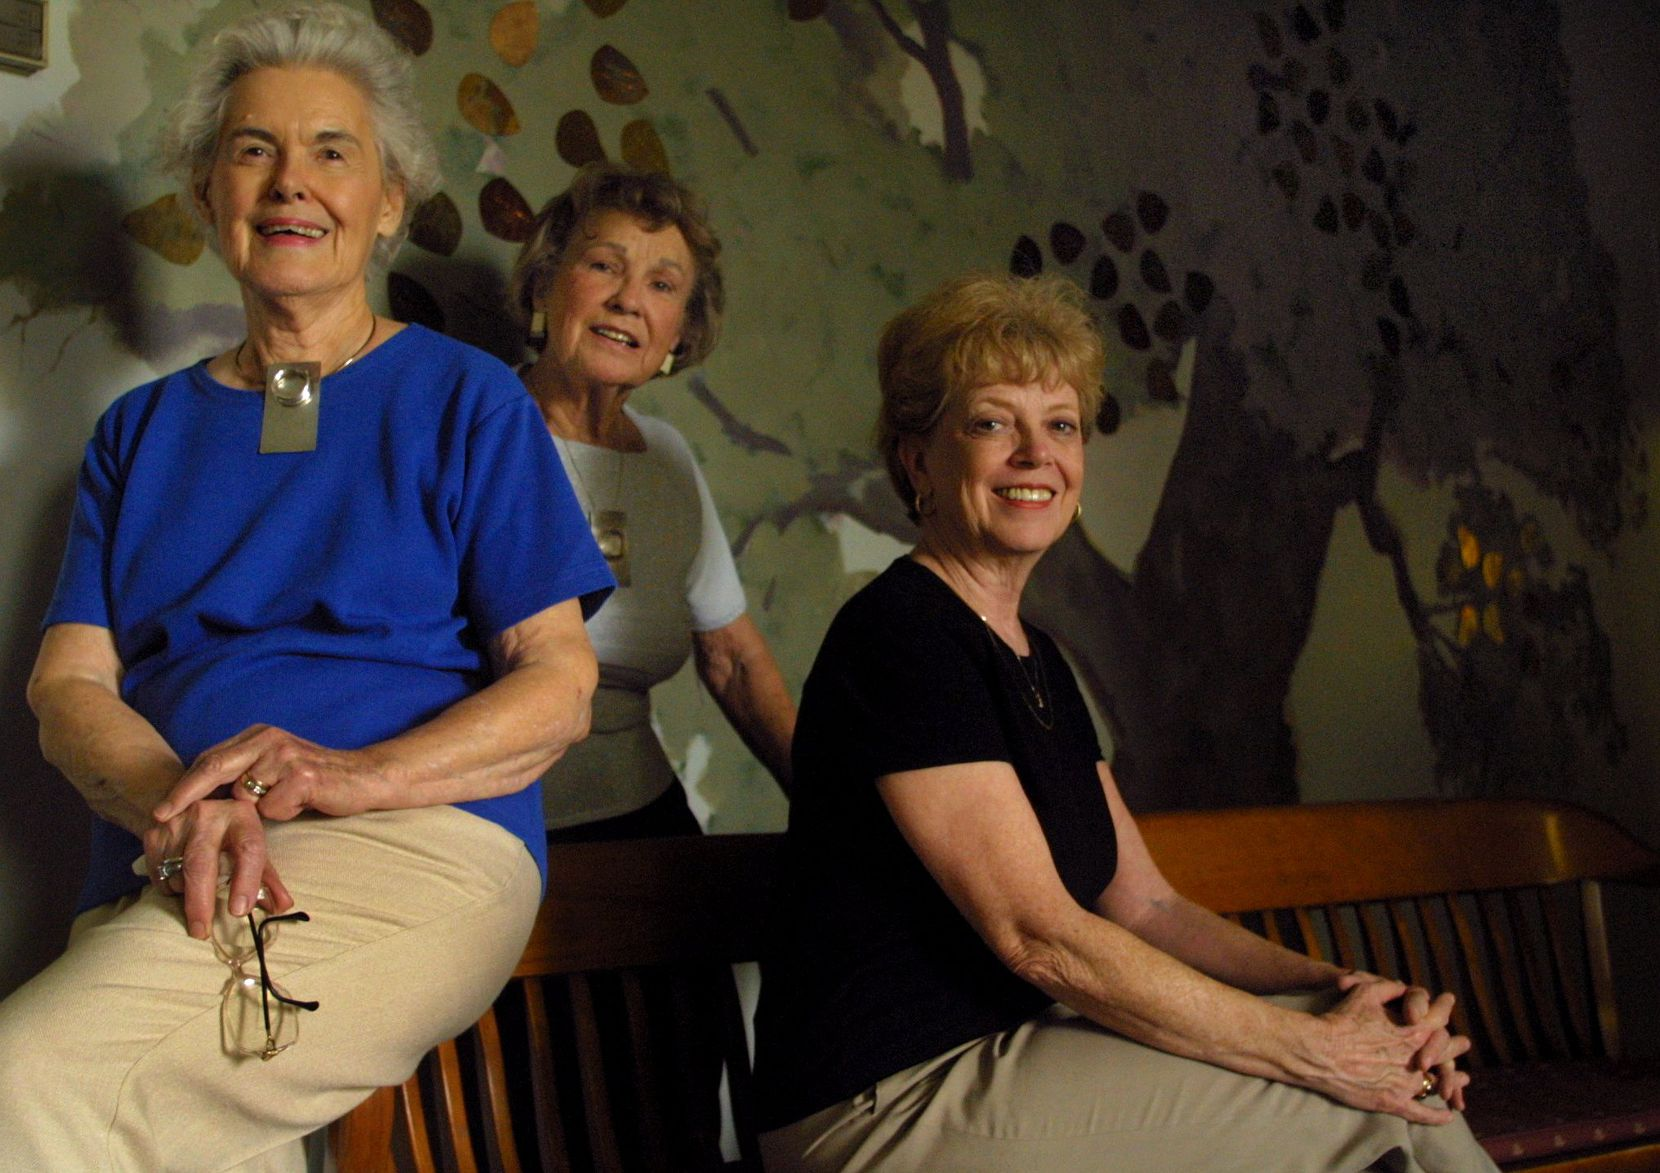 From left: Vivian Castleberry, Maura McNiel and Kay Cole were all key figures in the Women's Center of Dallas, which closed in 2001 after 30 years and disbursed its programs to other advocacy groups. Castleberry and McNiel were founders of the center, and Cole was one of the early presidents of the Women's Southwest Federal Credit Union, one of the programs of the Women's Center.